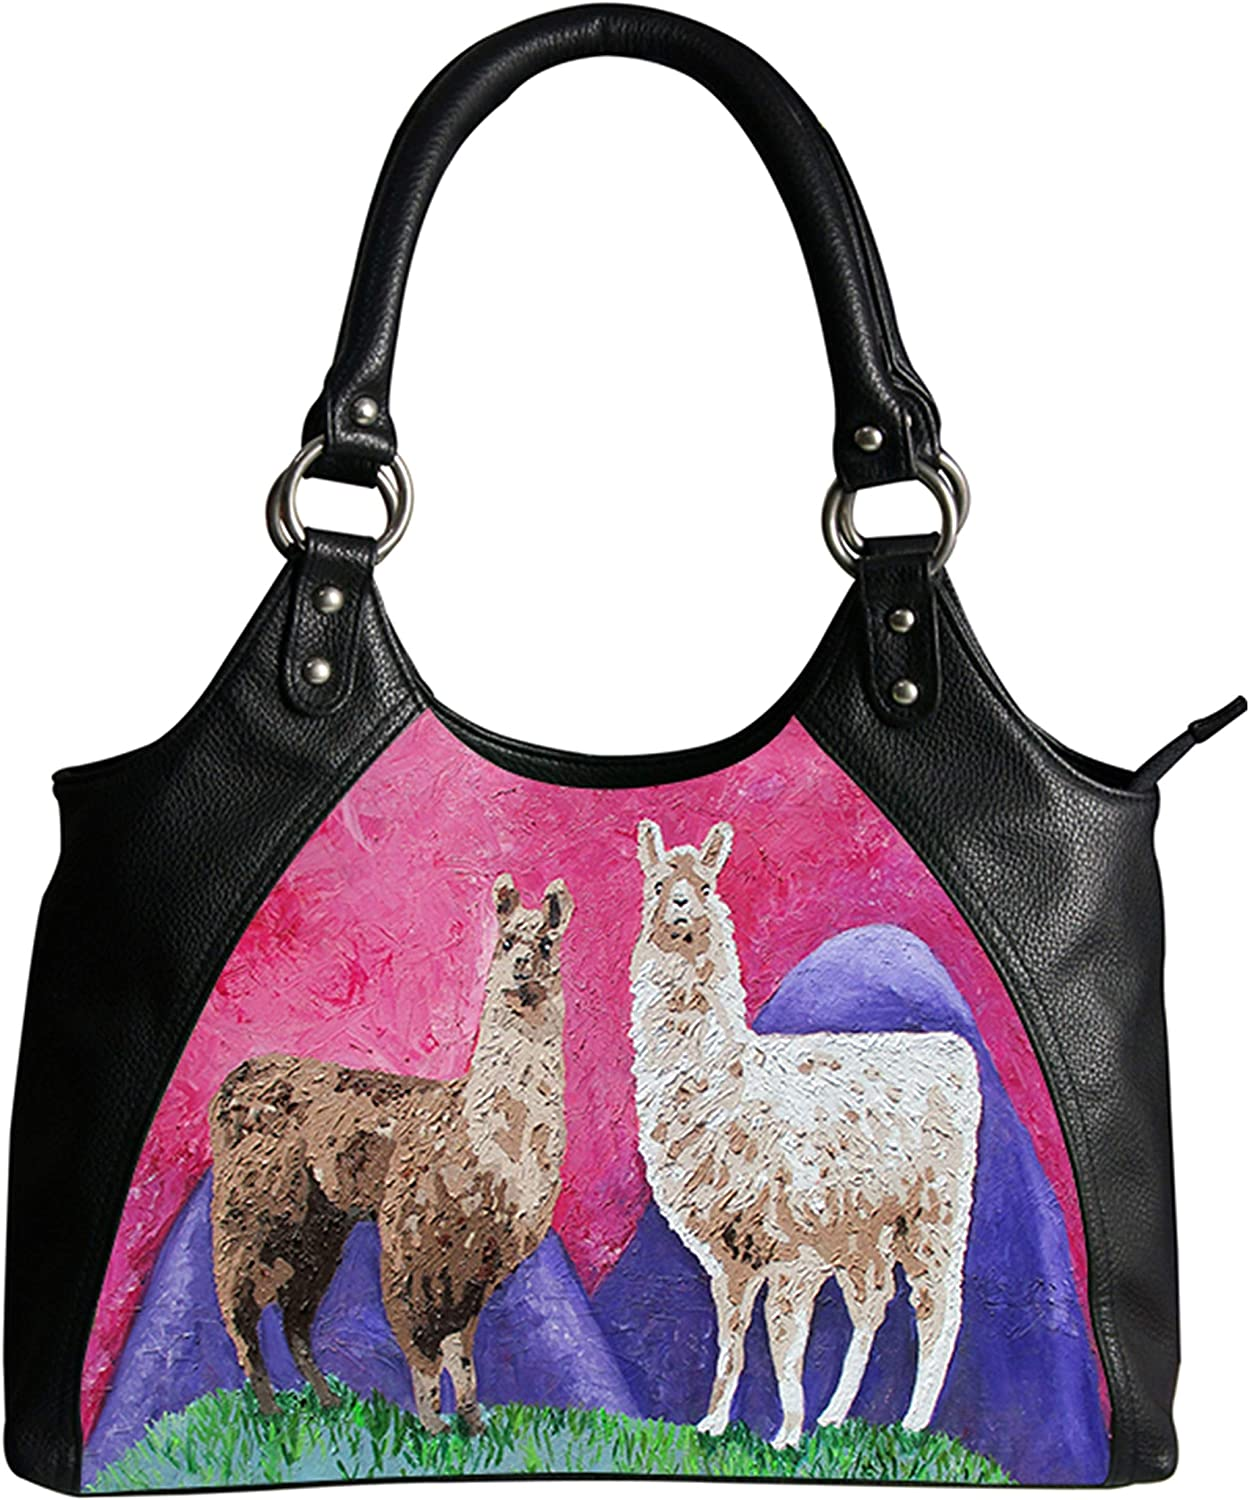 Vegan Leather Retro Style Shoulder Bag  Taken From My Original Oil Painting, Support Wildlife Conservation